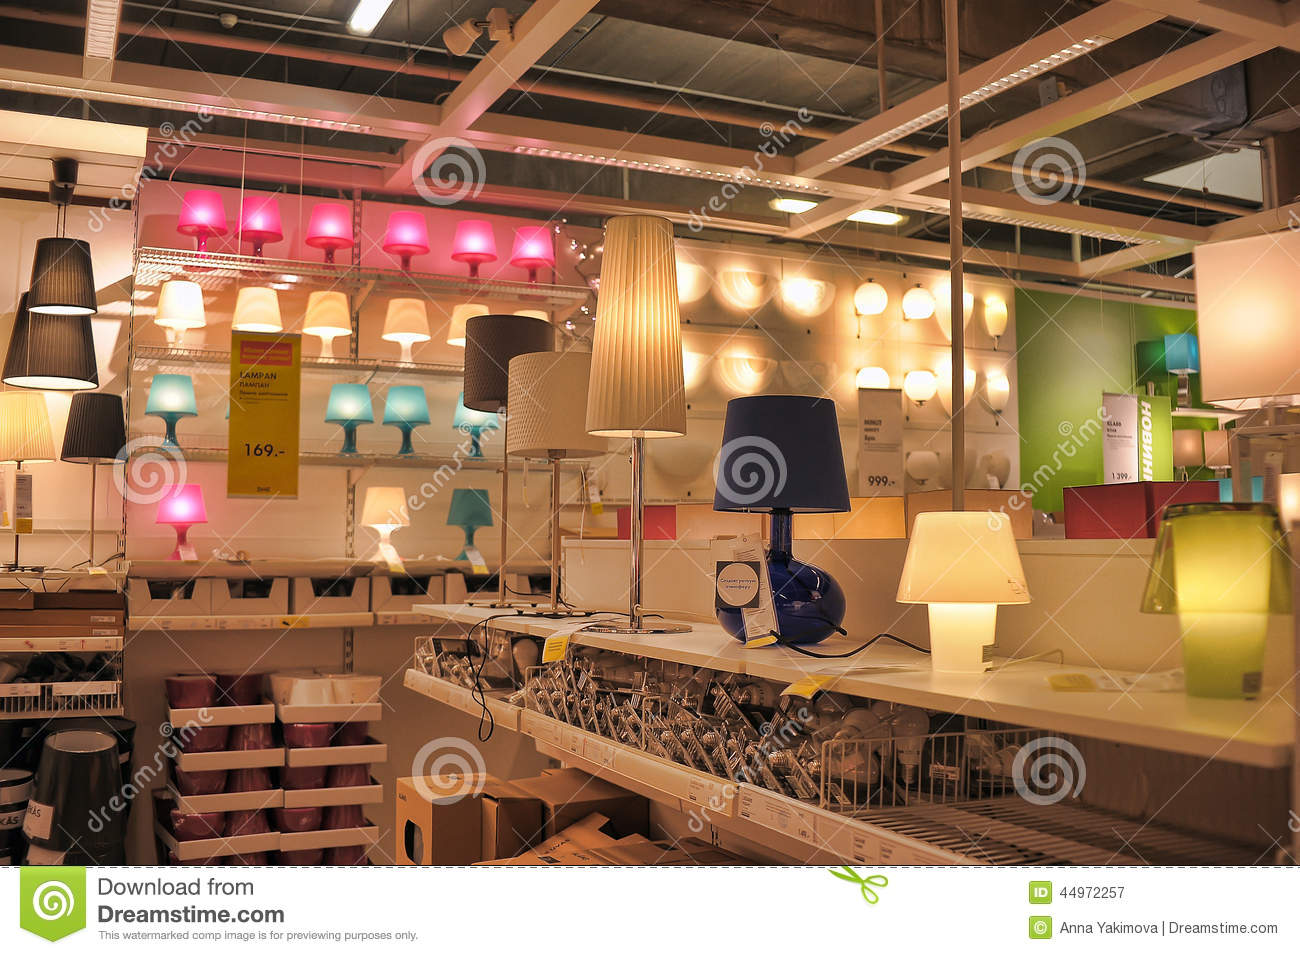 Lamps And Lighting Fixtures In The Store Editorial ...